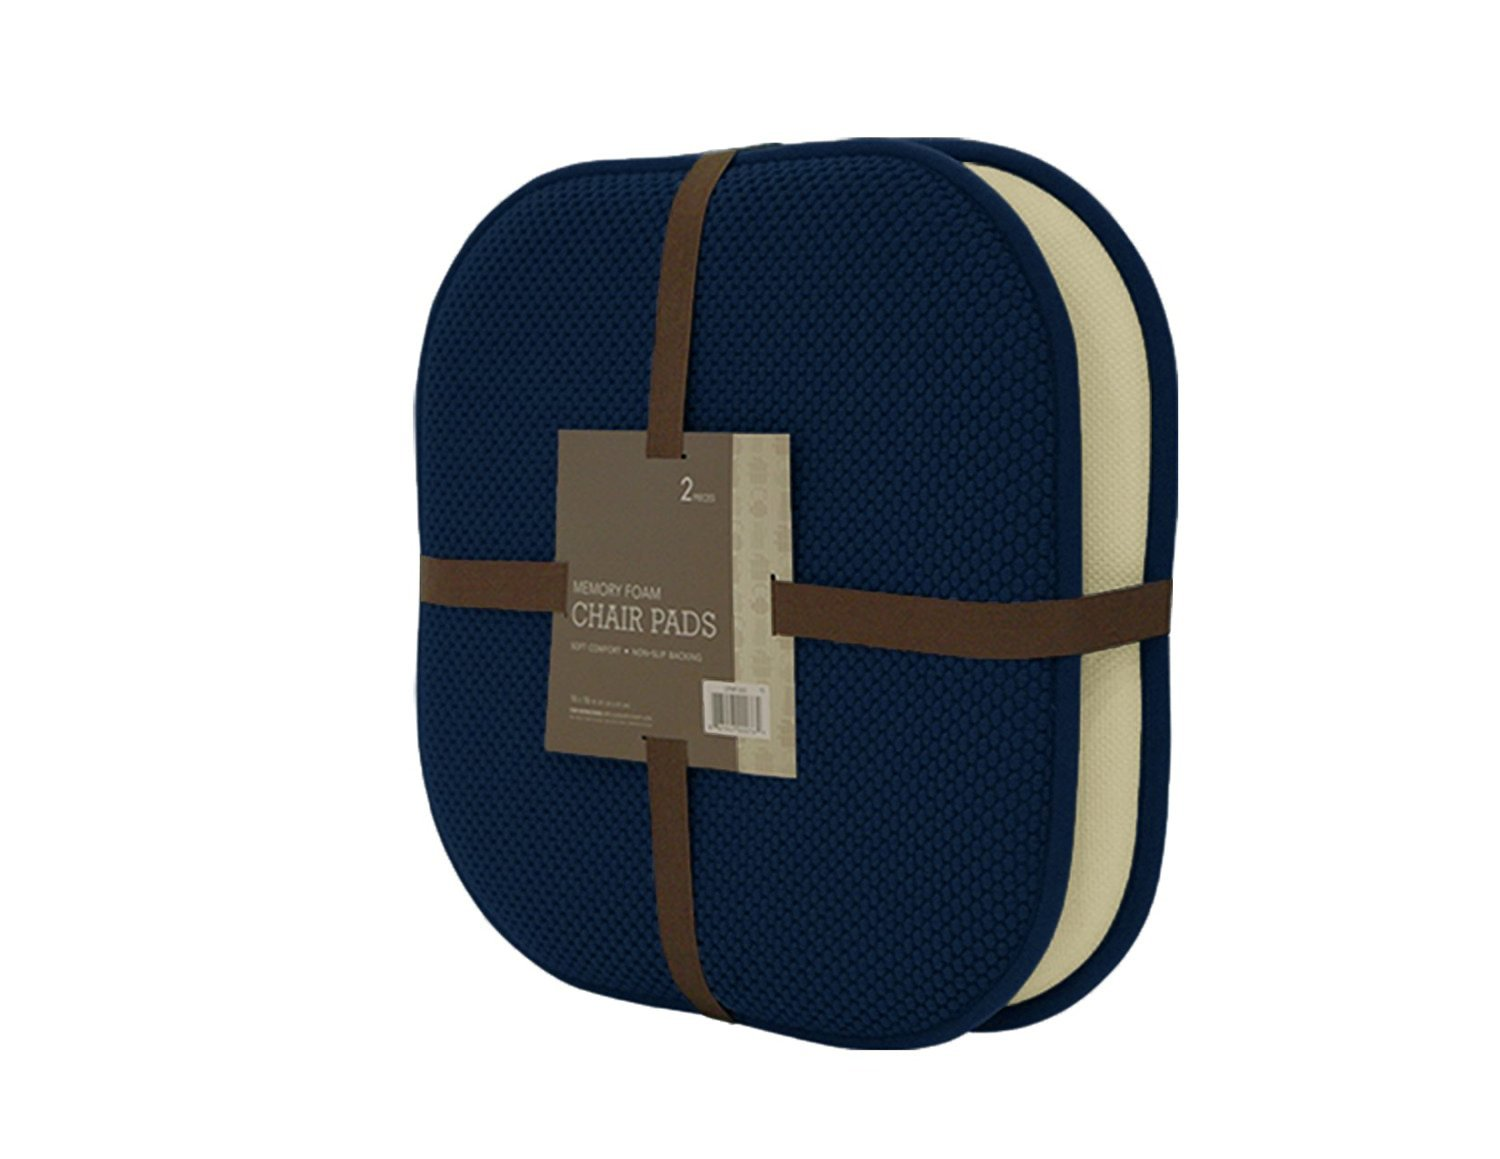 GoodGram 2 Pack Non Slip Ultra Comfort Memory Foam Chair Pads - Assorted Colors (Navy) by GoodGram (Image #1)